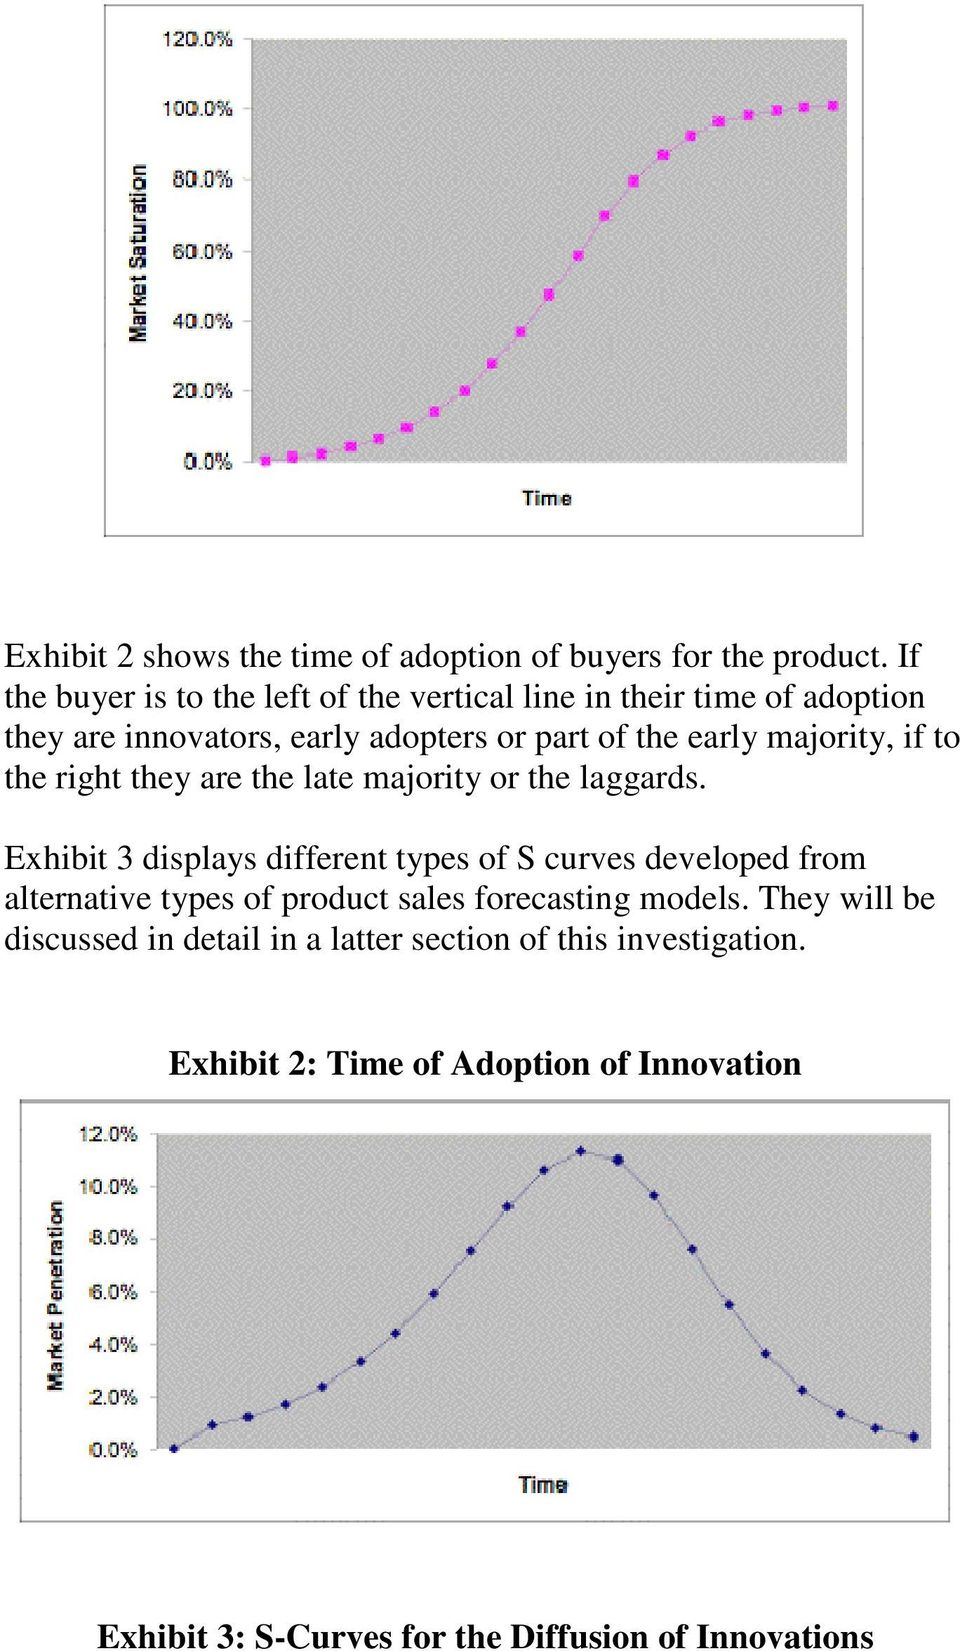 Overview of New Product Diffusion Sales Forecasting Models - PDF